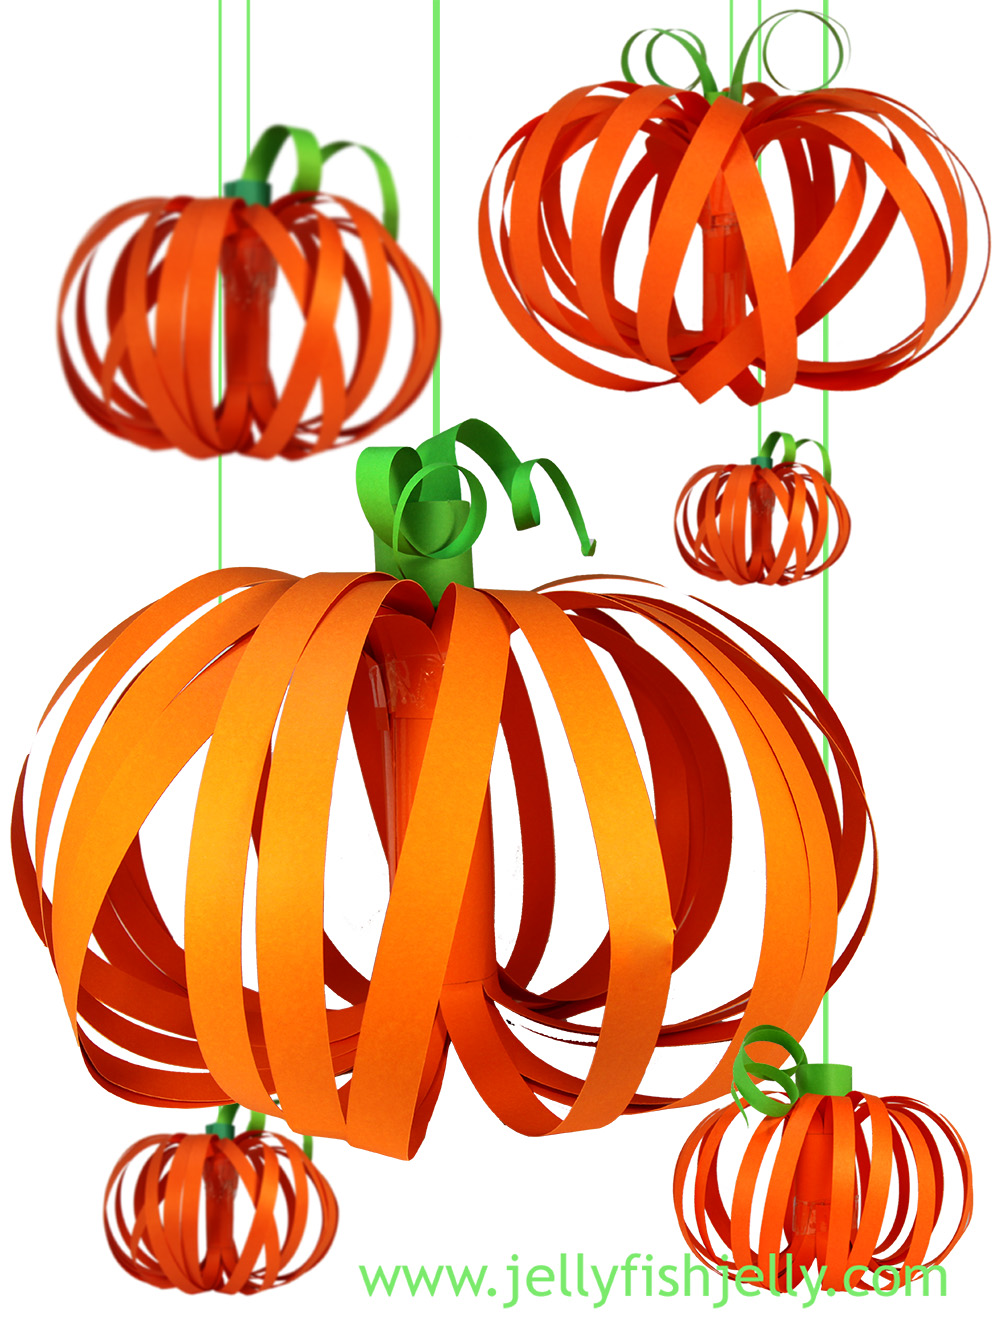 It's just a graphic of Sizzling Pumpkin Arts and Craft